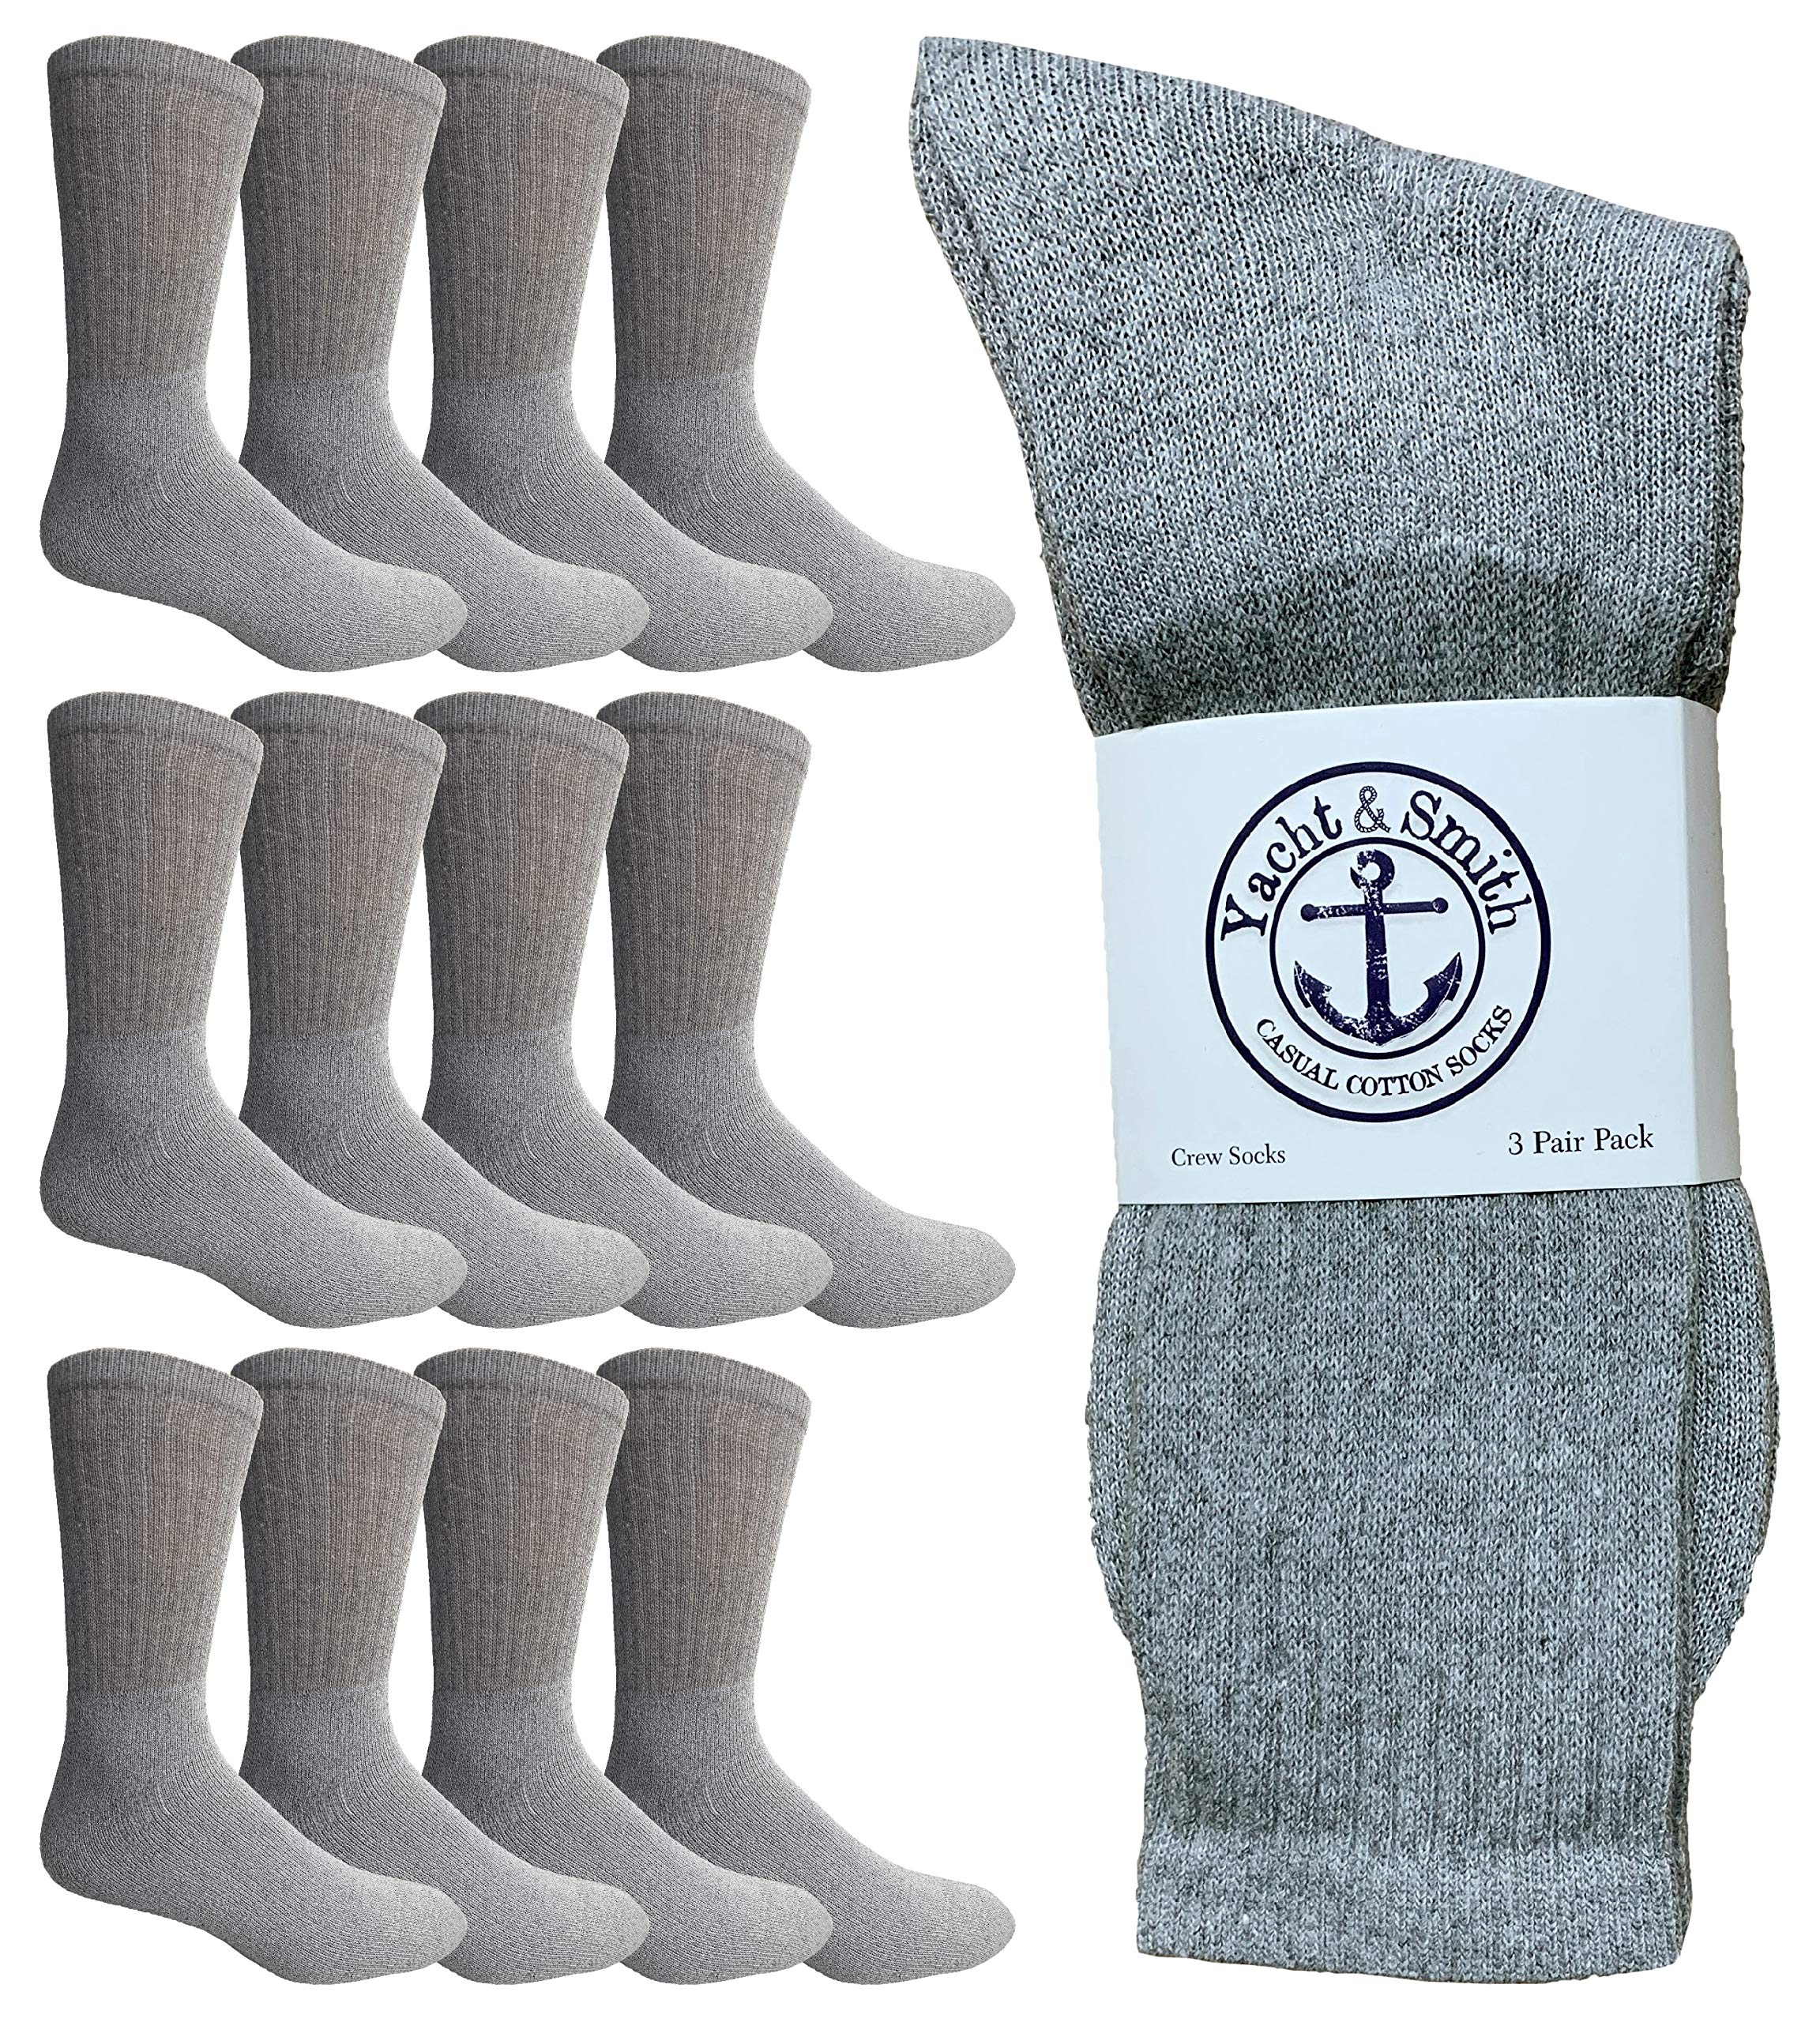 Yacht & Smith Wholesale Bulk Mens Crew Socks, Cotton Big And Tall Plus Size Socks Size 13-37 by Yacht & Smith